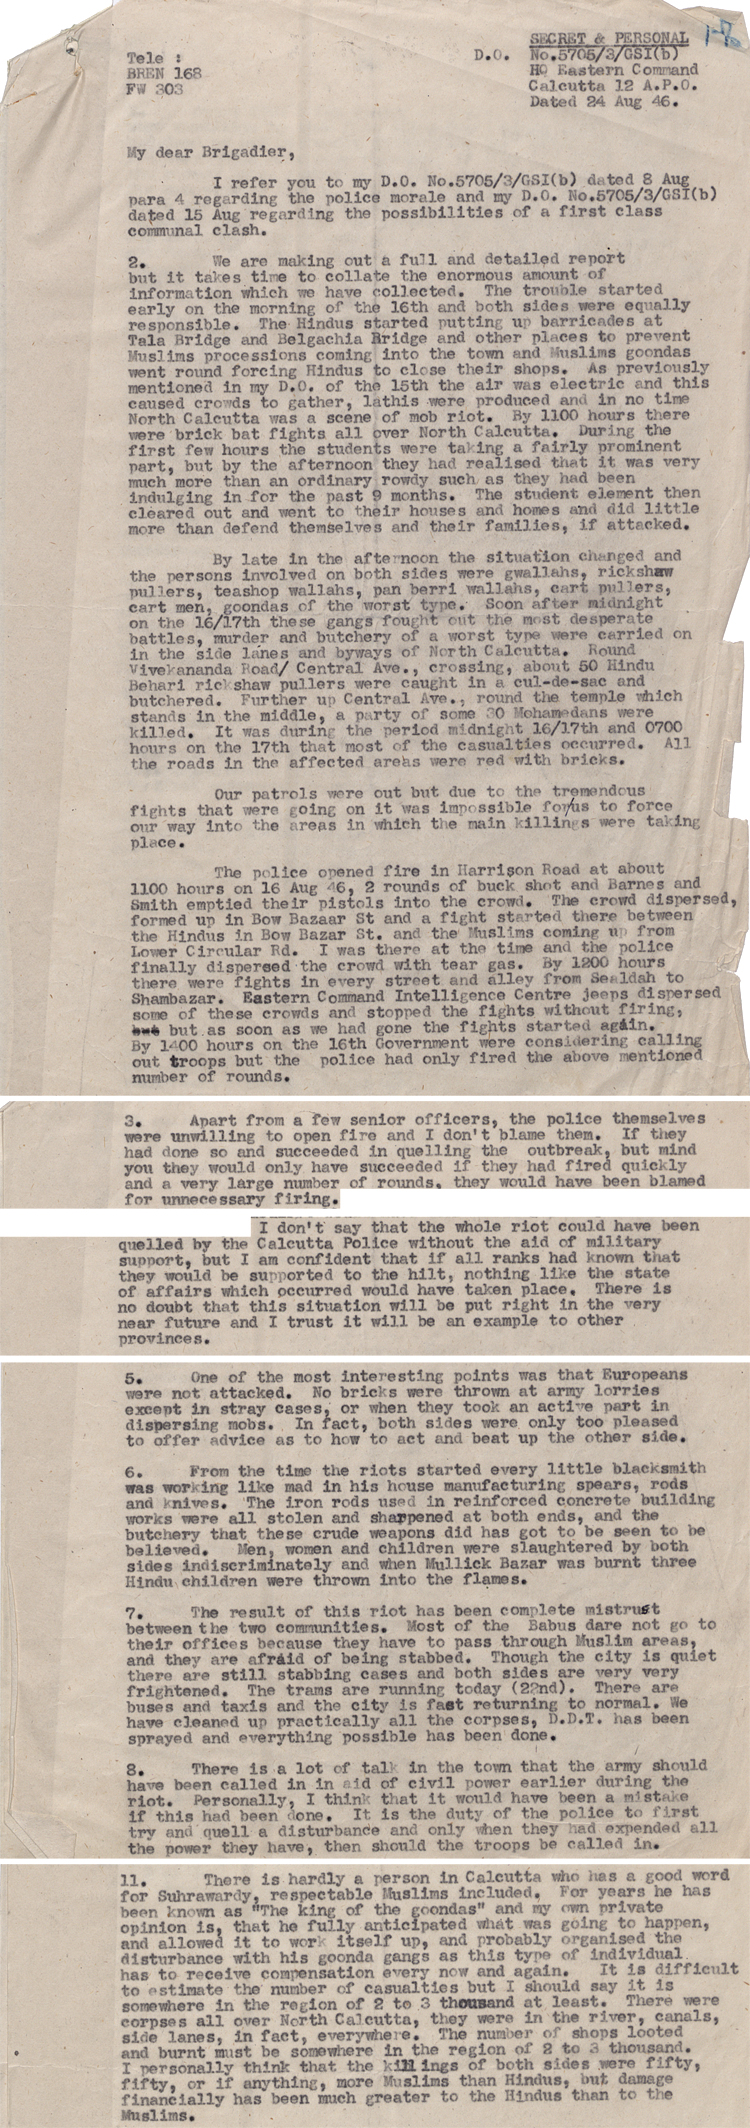 Extracts from a military report on the Calcutta riots, 24 August 1946 (WO 216/662)